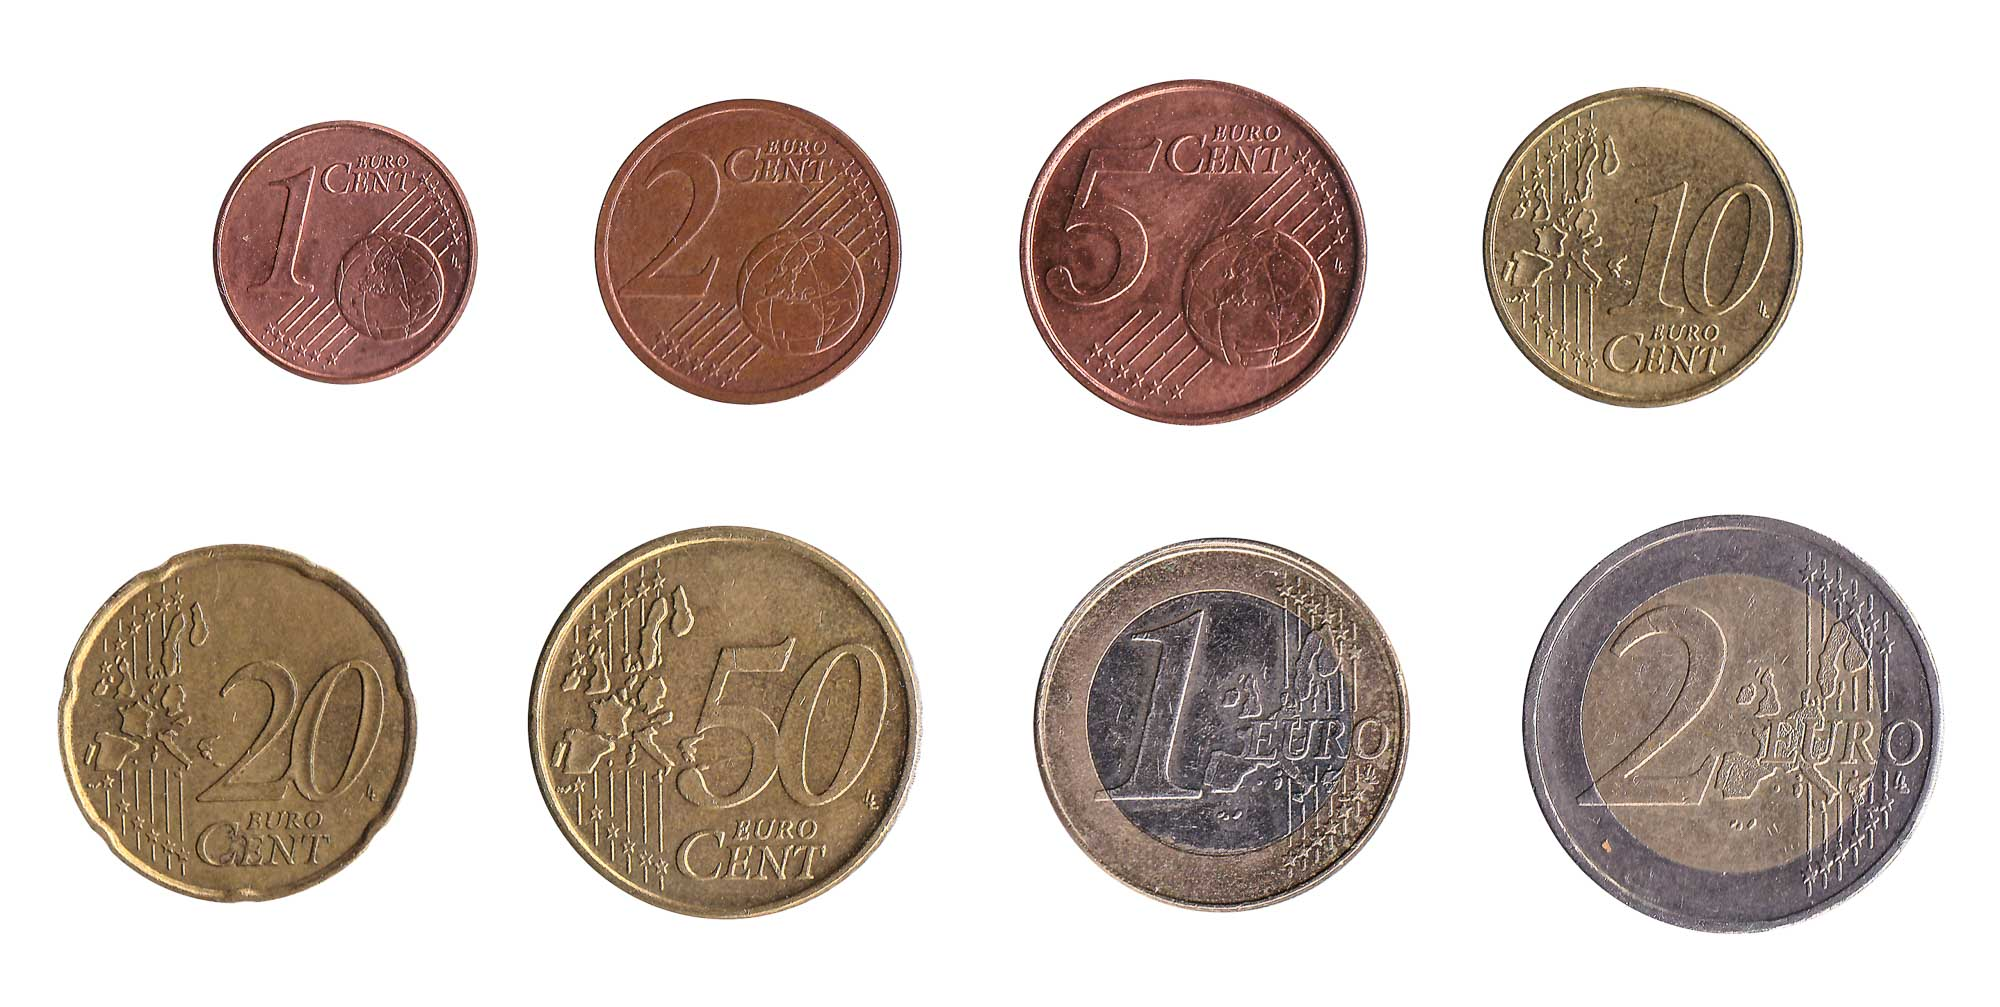 Euro coins accepted for exchange